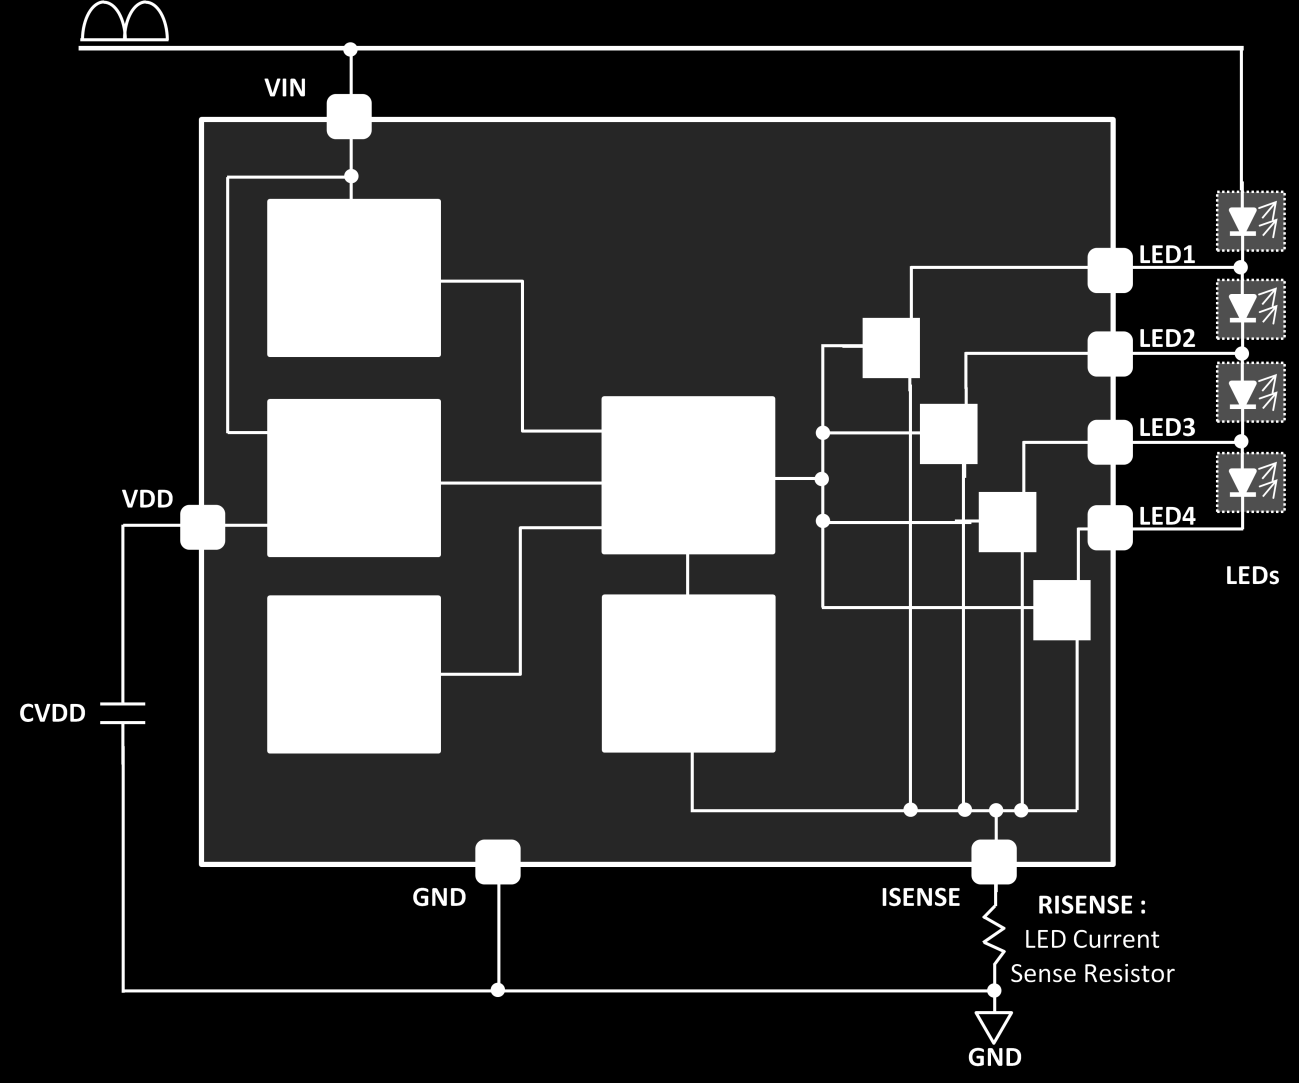 PIN FUNCTIONS VIN: Rectified AC Input Voltage. Connect this pin to rectified AC voltage after a bridge rectifier. VDD: Internal Shunt Regulator Output Voltage.